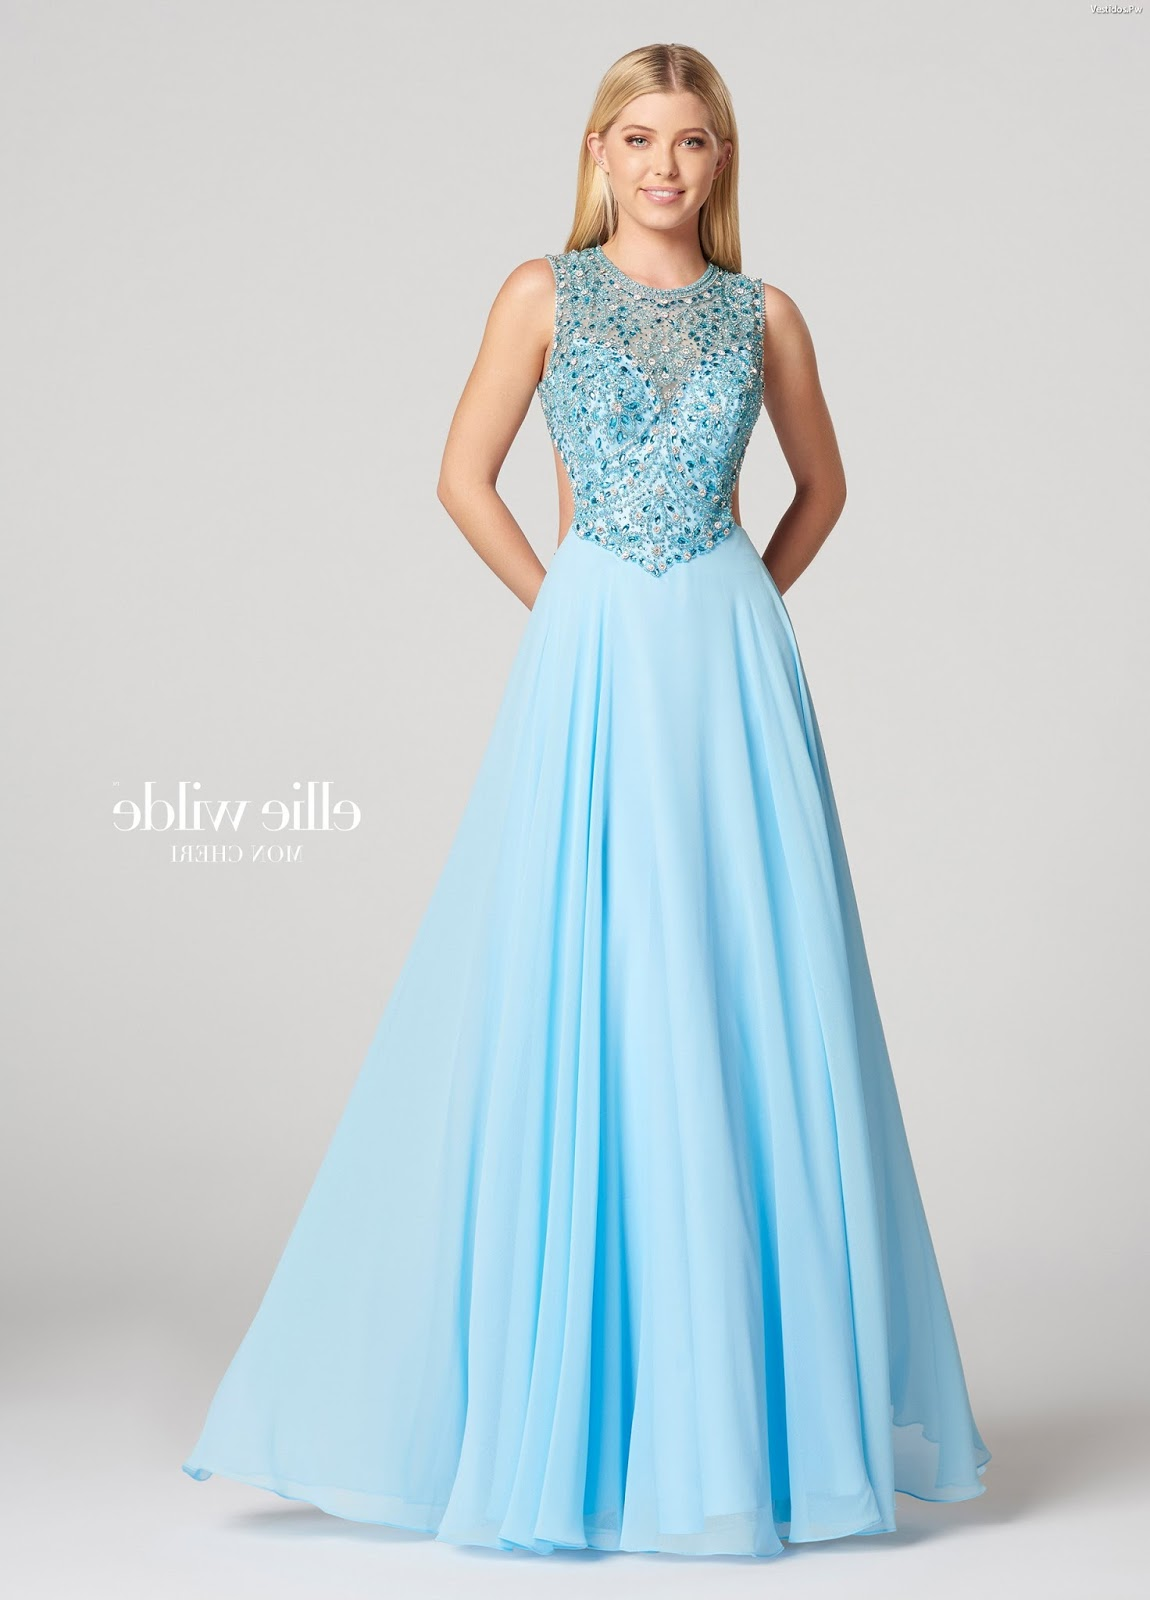 Stuccu: Best Deals on vestidos gala. Up To 70% offBest Offers· Exclusive Deals· Lowest Prices· Compare Prices.